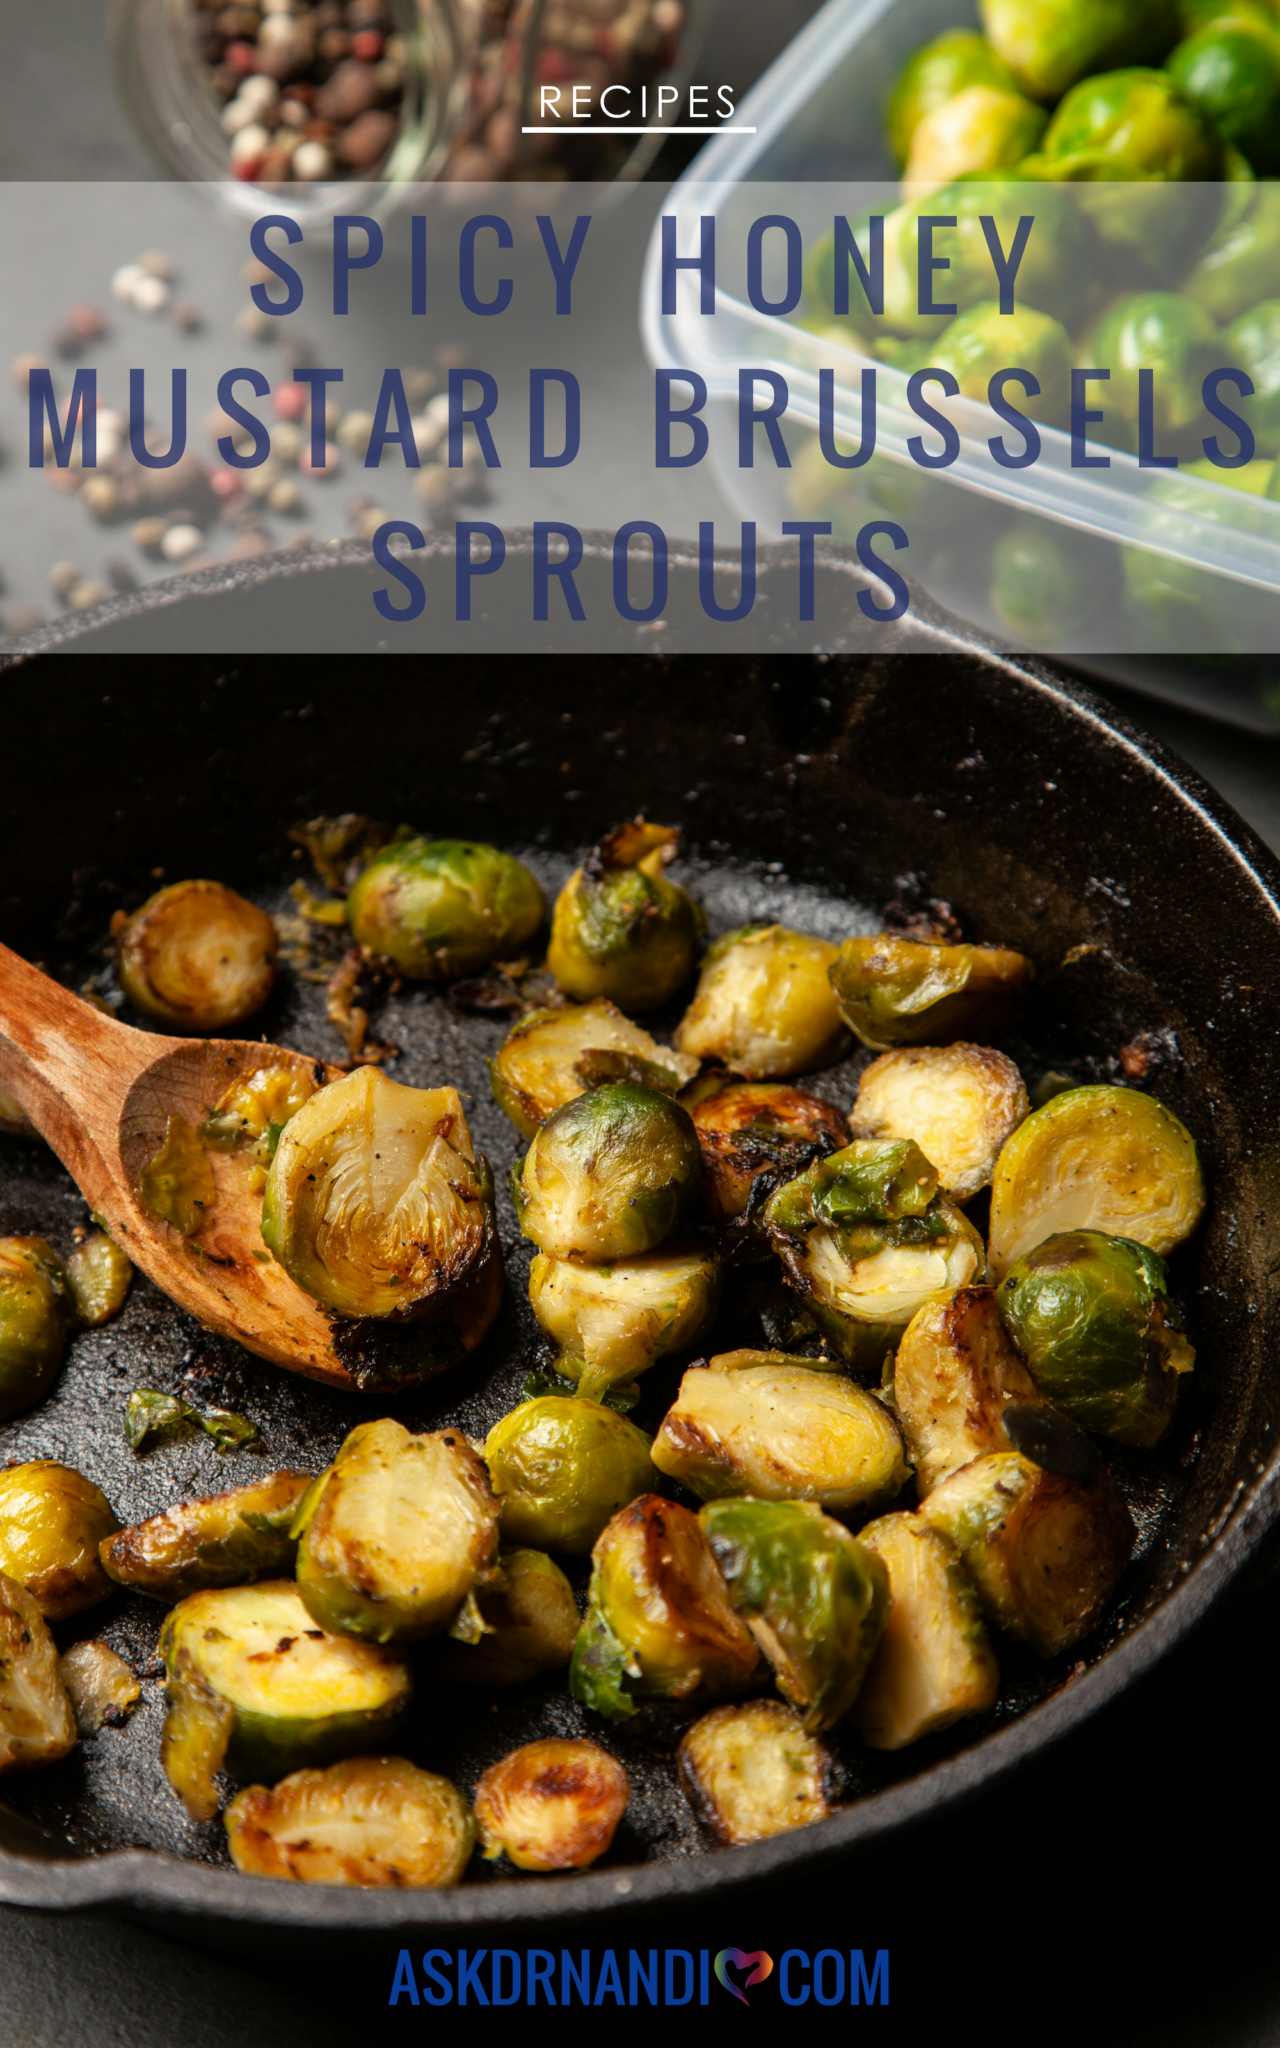 Delicious Honey Mustard Brussels Sprouts to Add to Your Culinary Arsenal by Dr. Nandi!